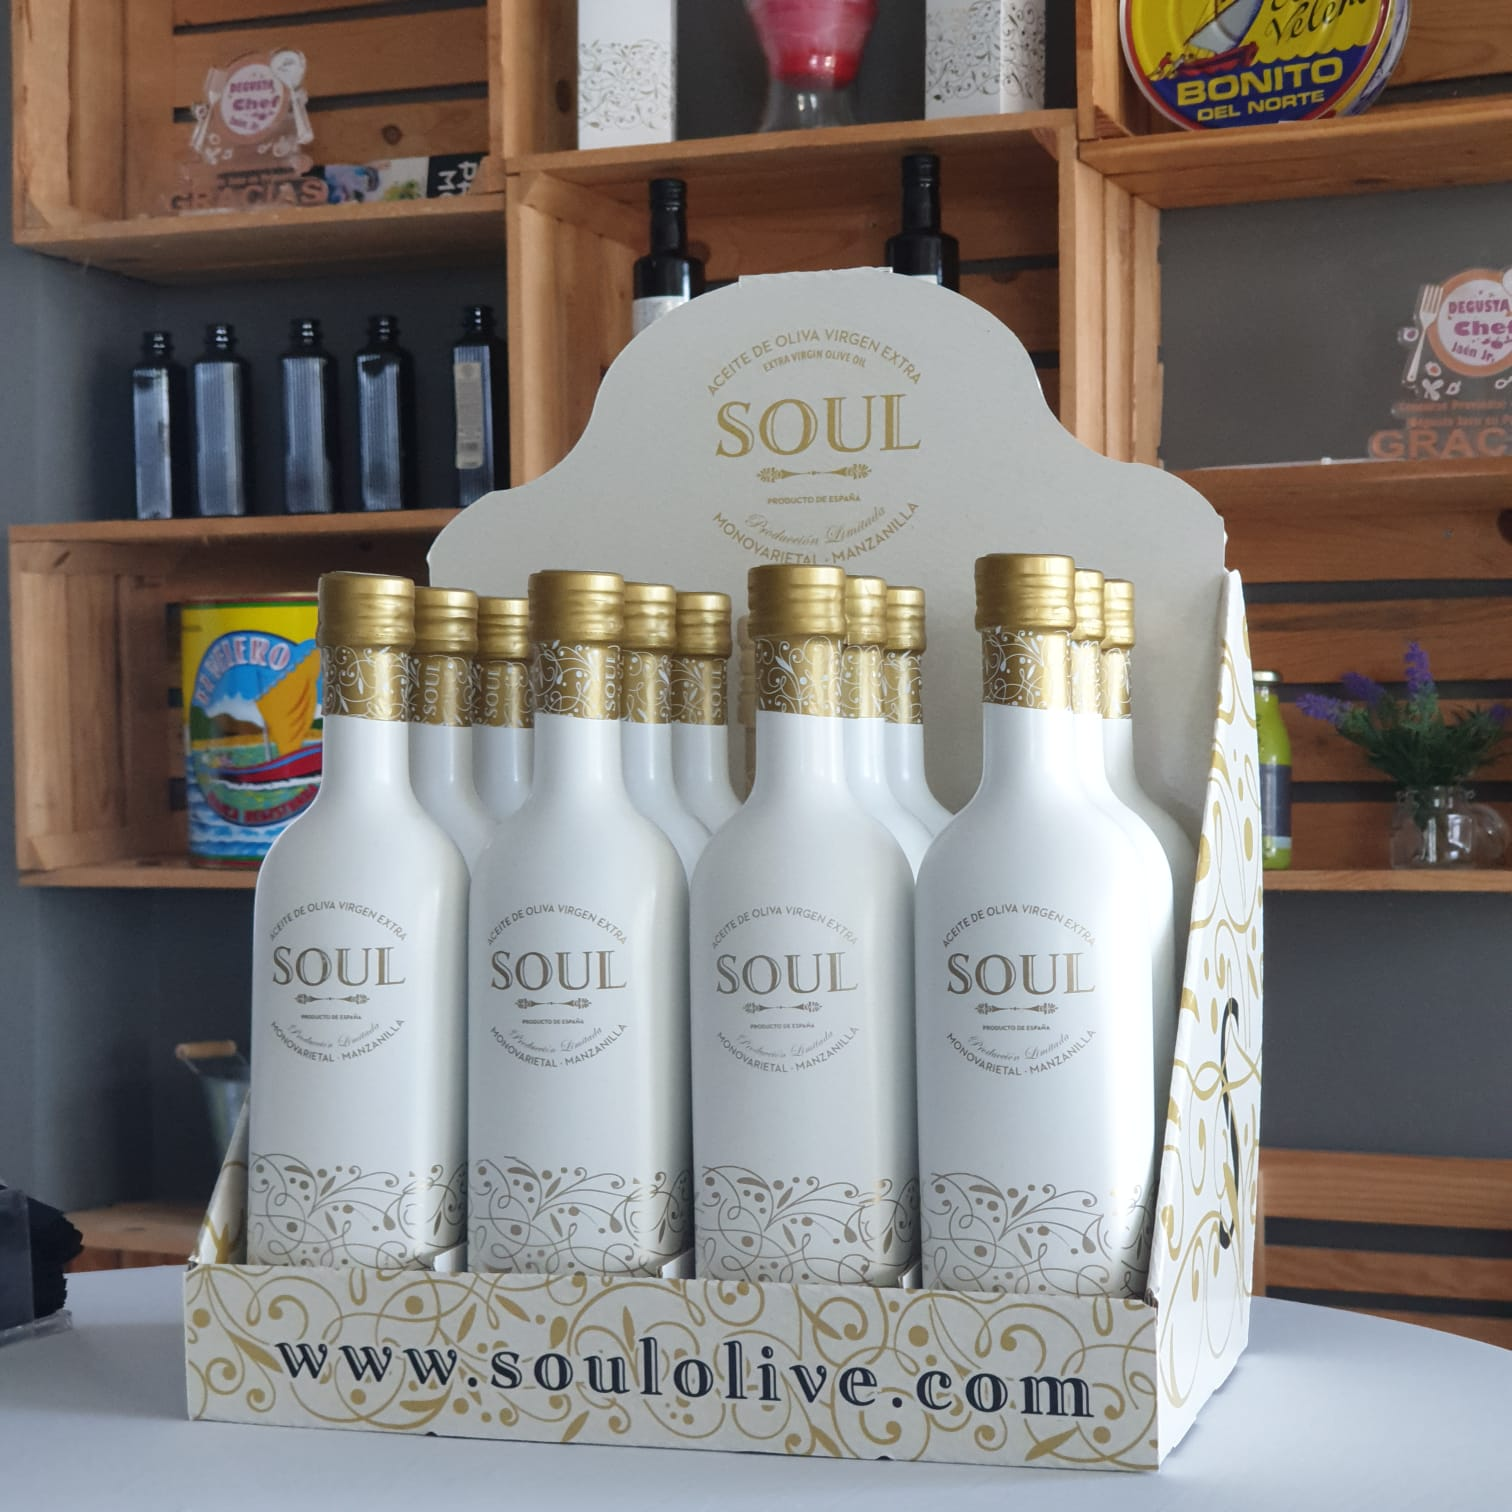 Nuevo Expositor Soul Olive